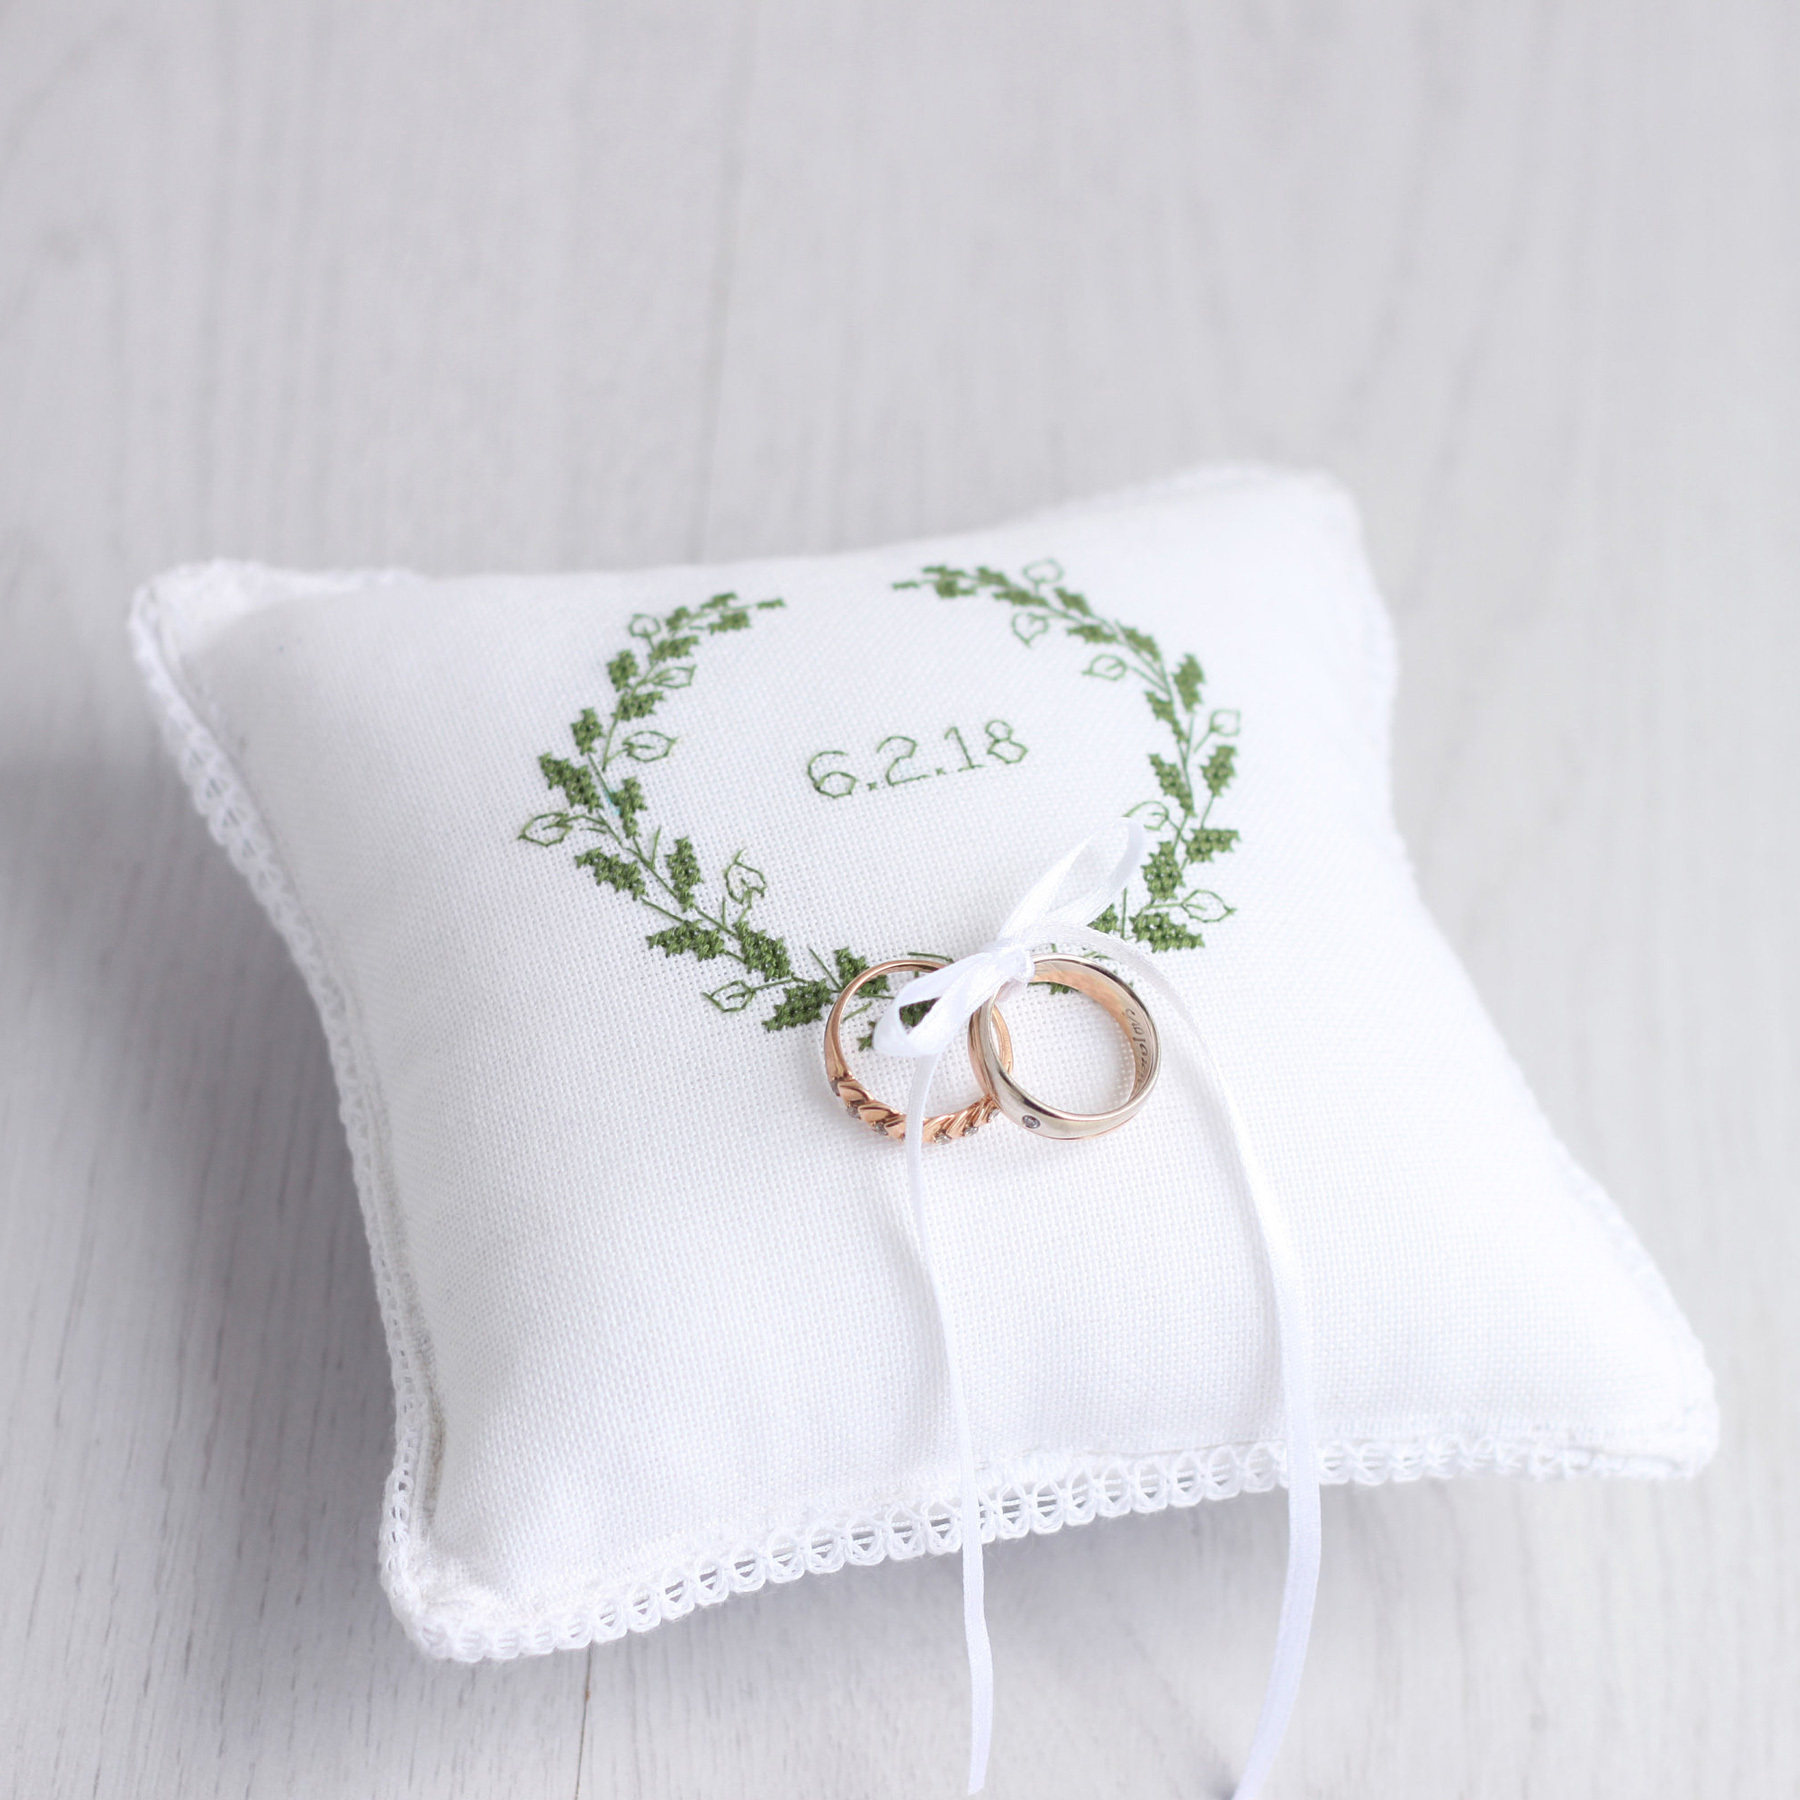 RedPin Ring Bearer Pillow with Laurel Wreath Etsy photo